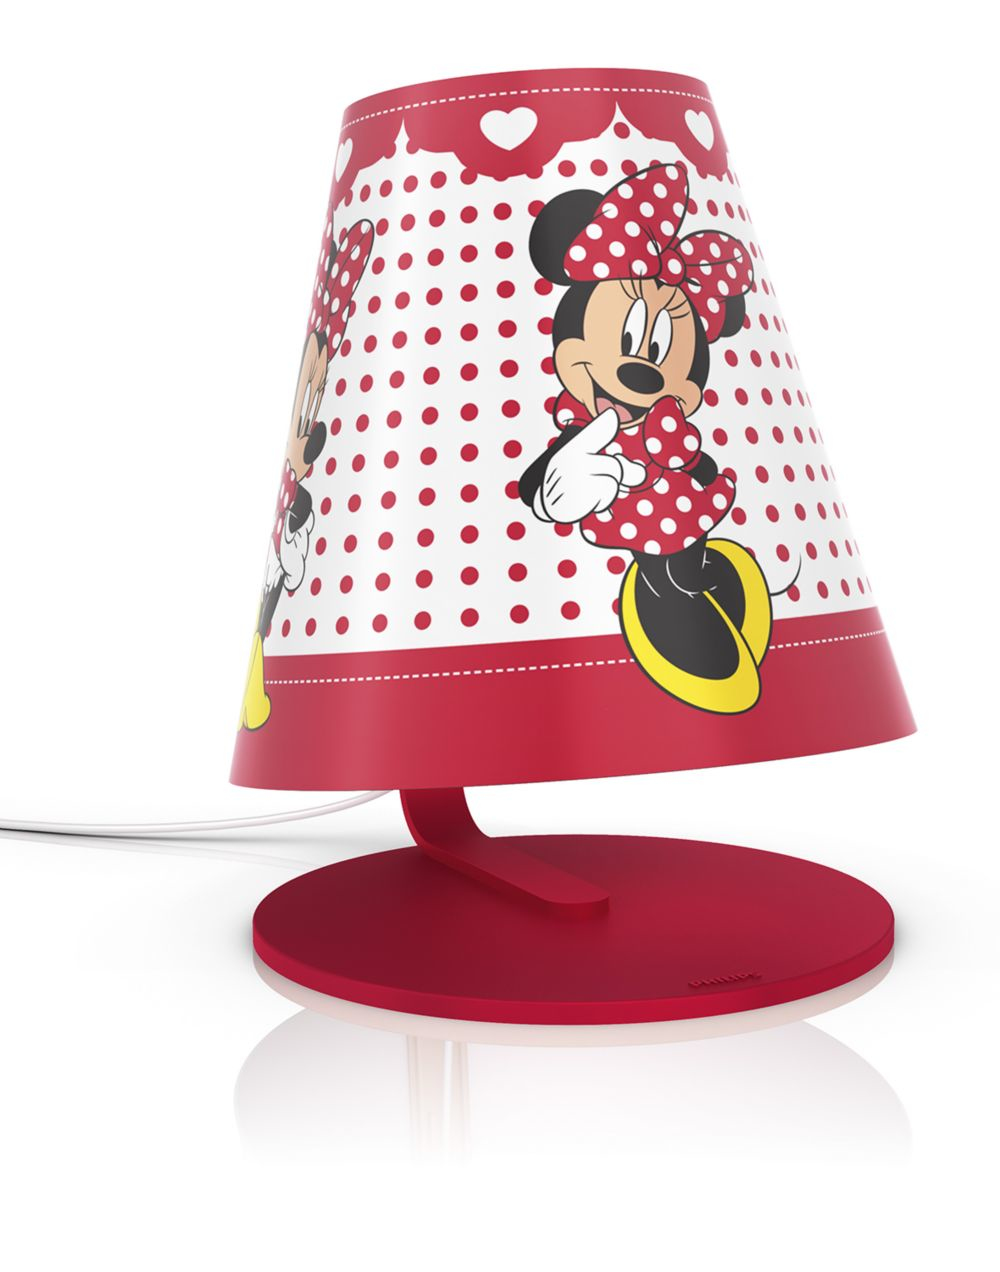 Philips lampe kinderzimmer disney tischleuchte minnie mouse licht 717643116 ebay - Minnie mouse kinderzimmer ...